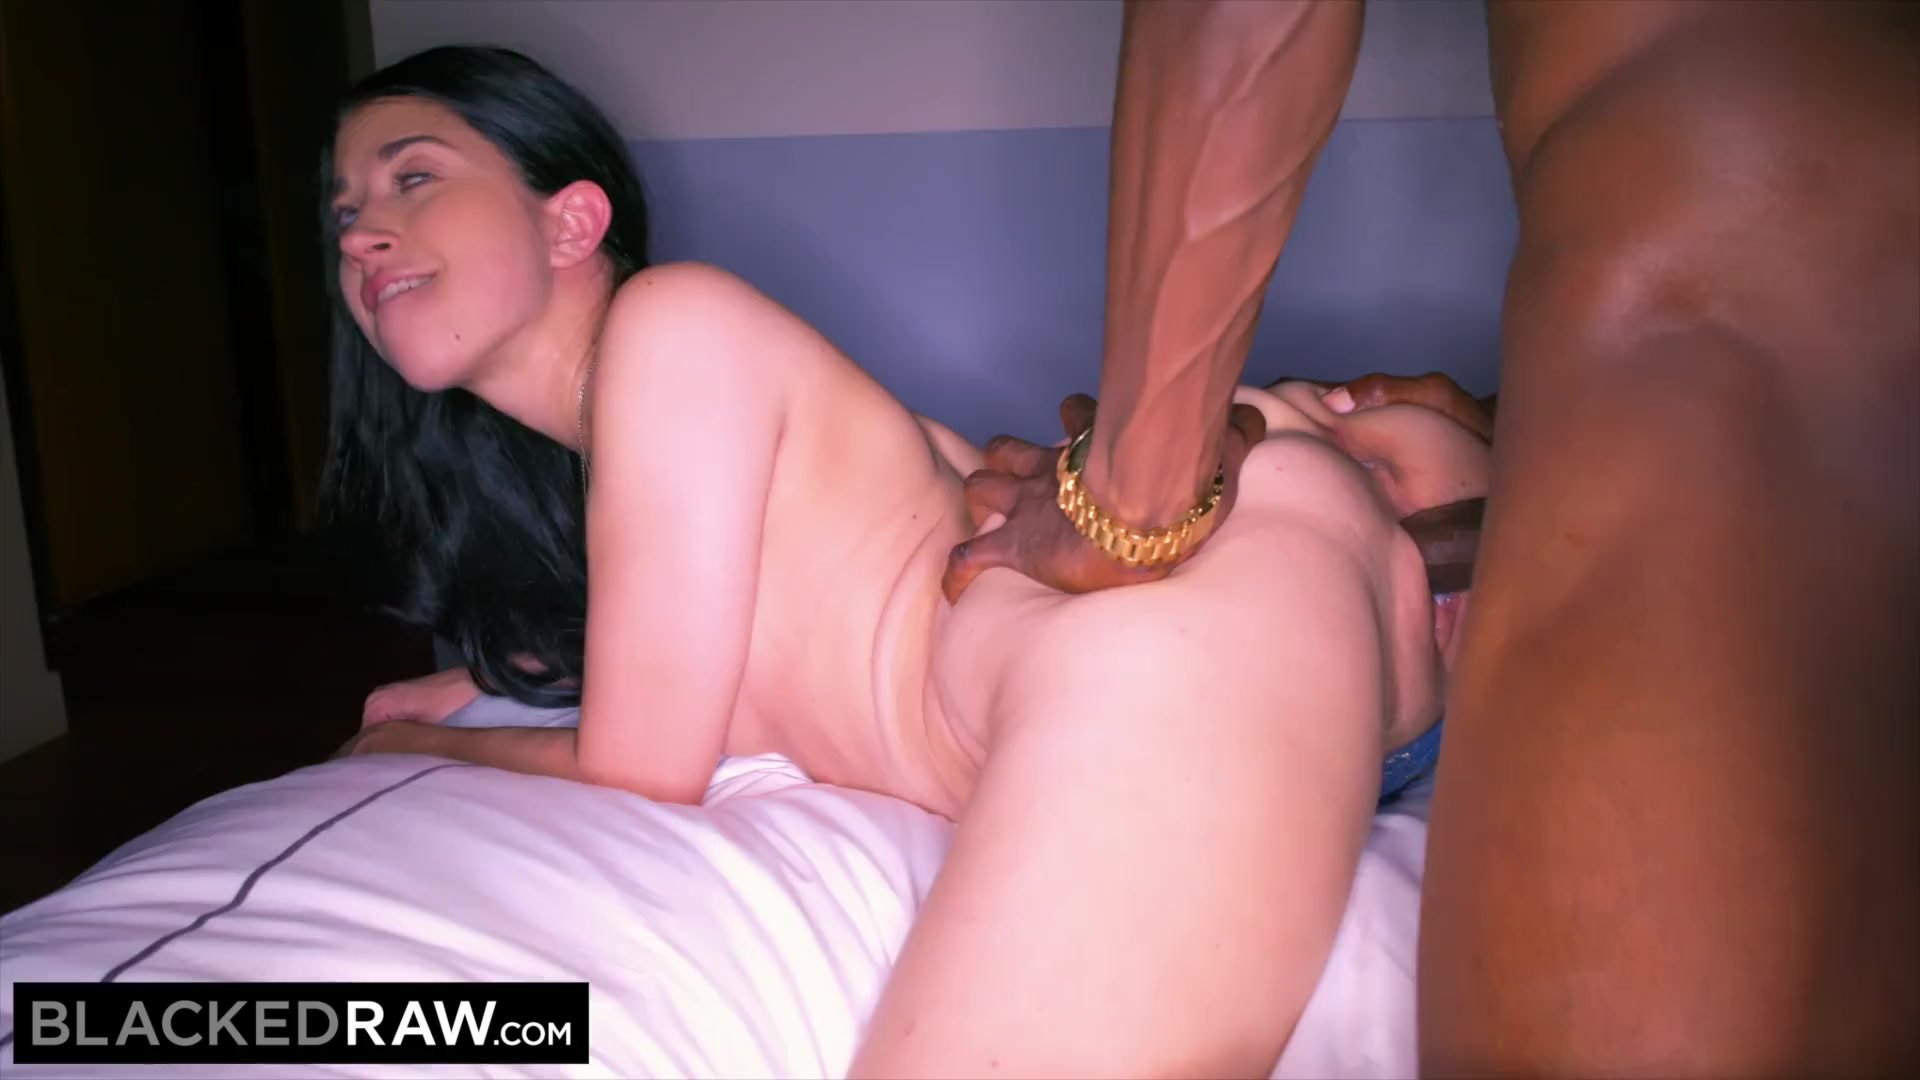 BLACKEDRAW She asked her white boyfriend to have some BBC for a night